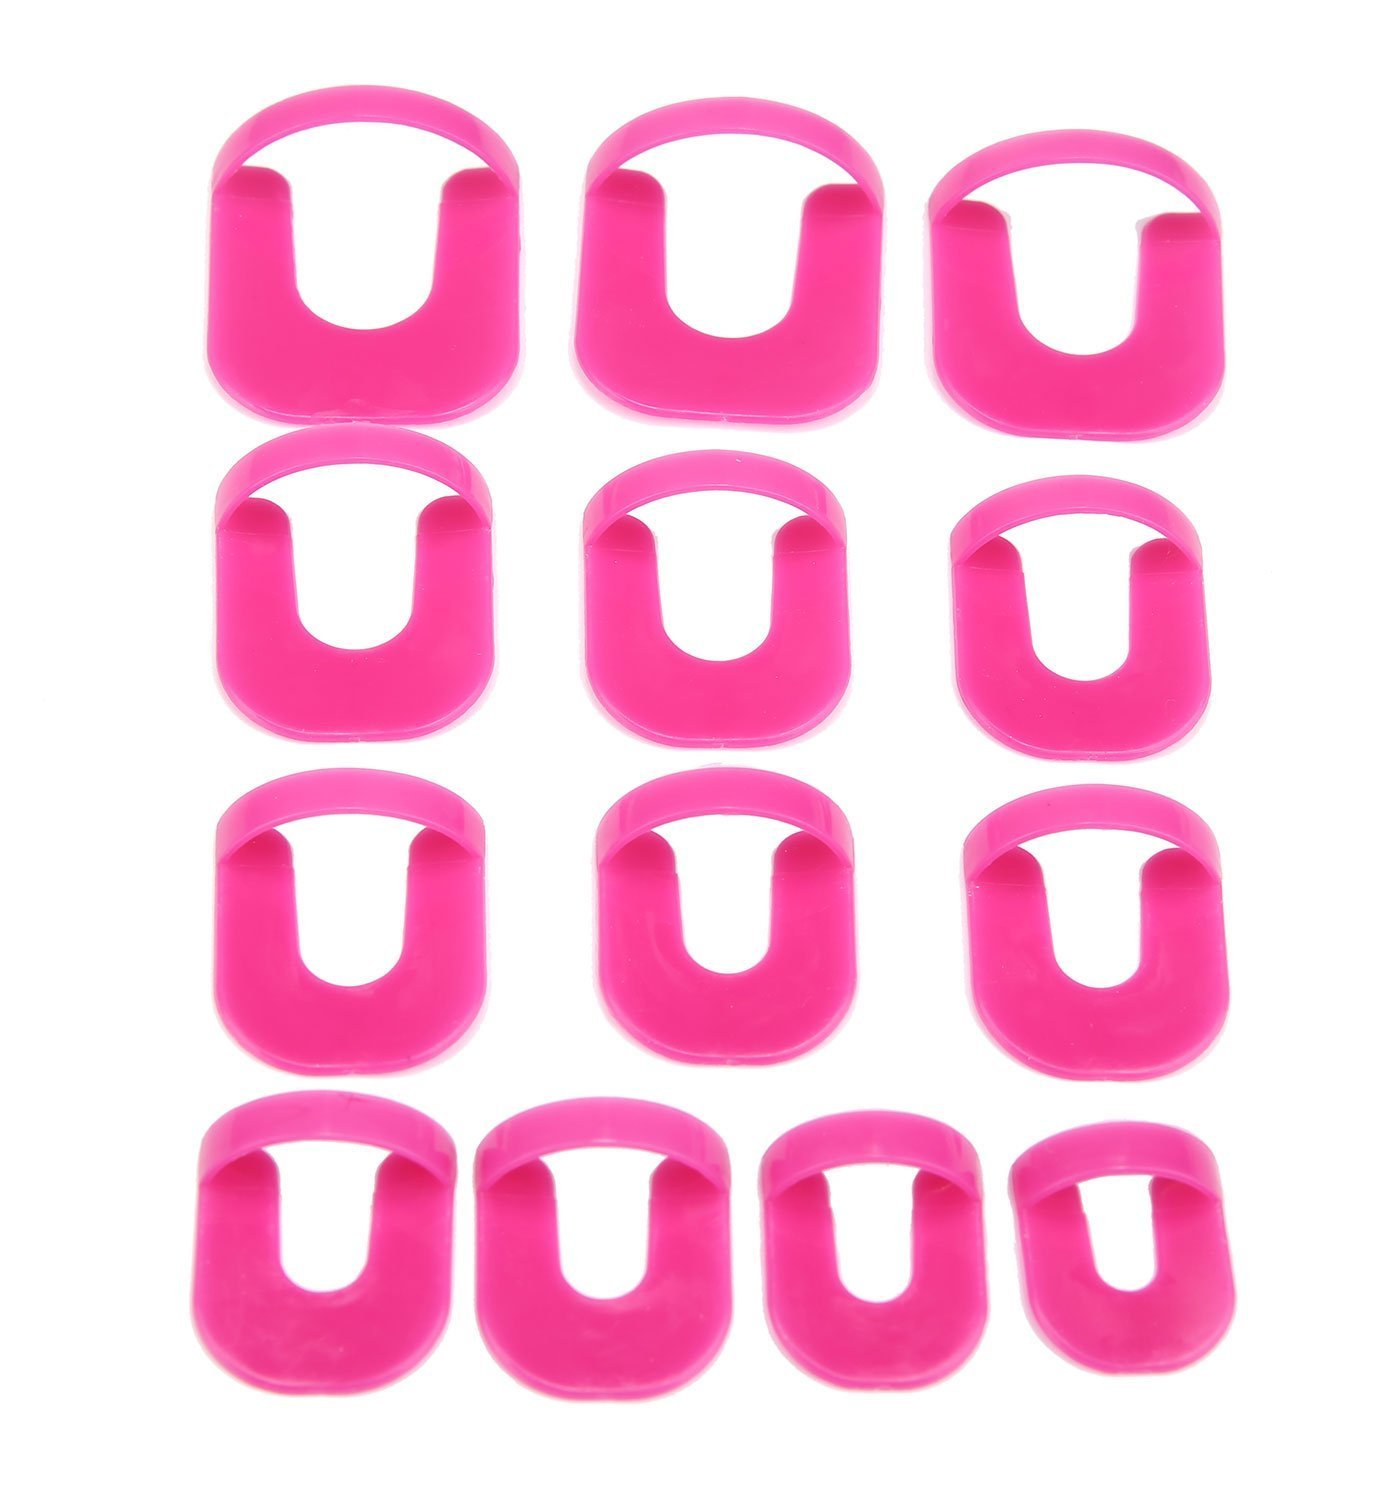 Chbmarteu Nail Glue Model Clip, Nail Spill-proof Tools, Proof Finger Cover Nail Polish, Nail Edge Gradient Printing French Nail Glue Spill Prevention Tool